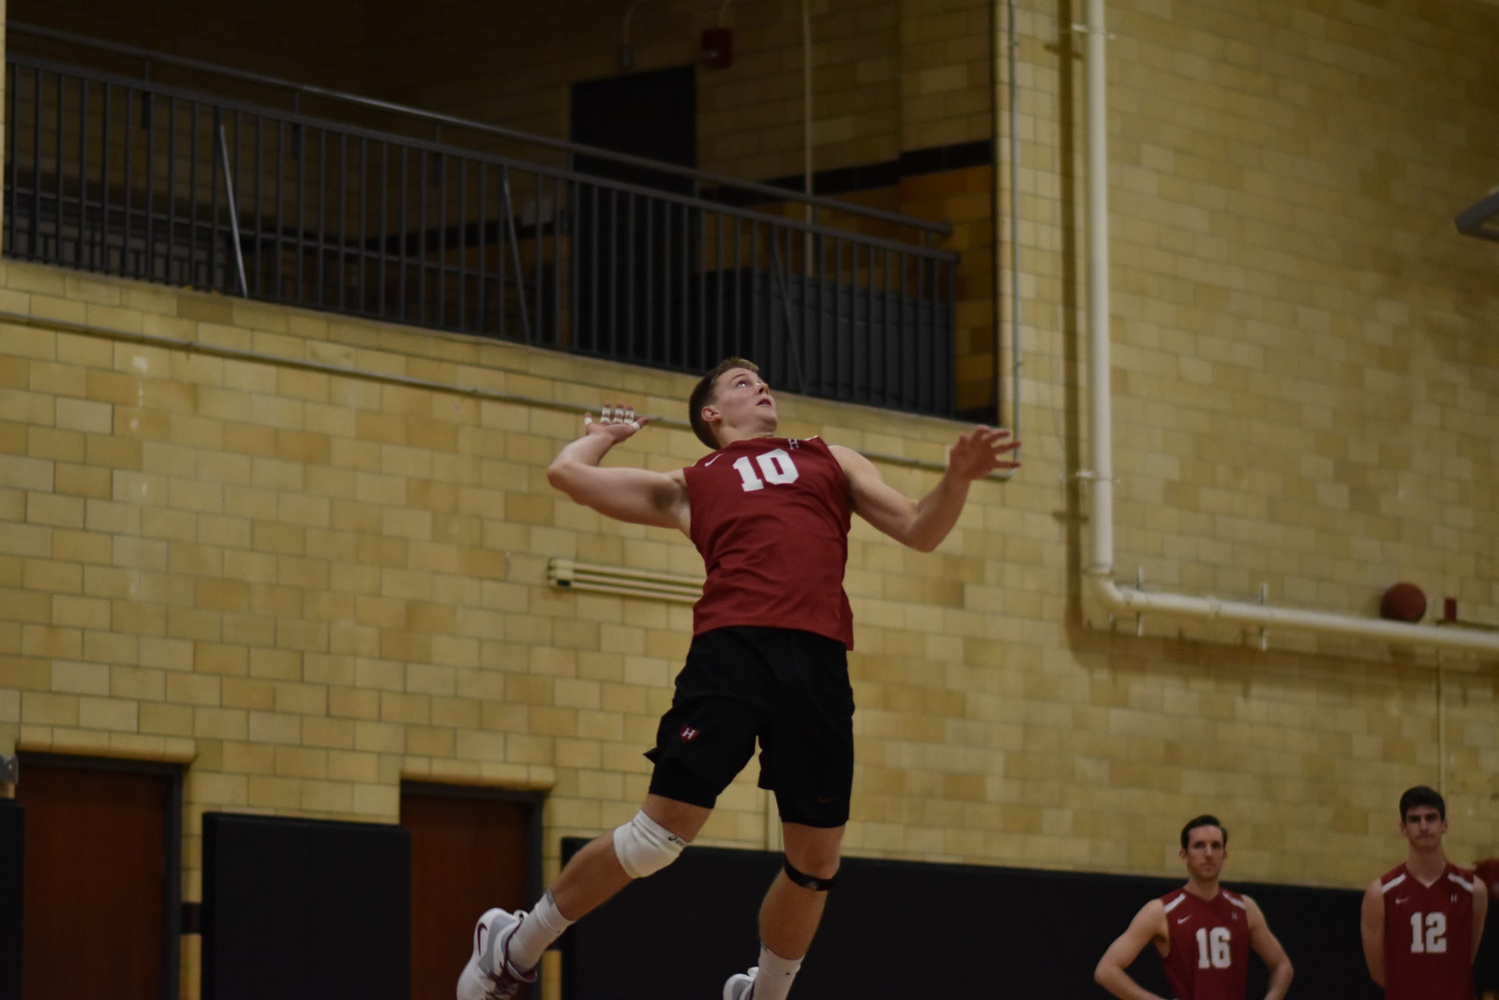 Setter Matthew Ctvrtlik prepares to spike the volleyball in February's game against Purdue Fort Wayne.